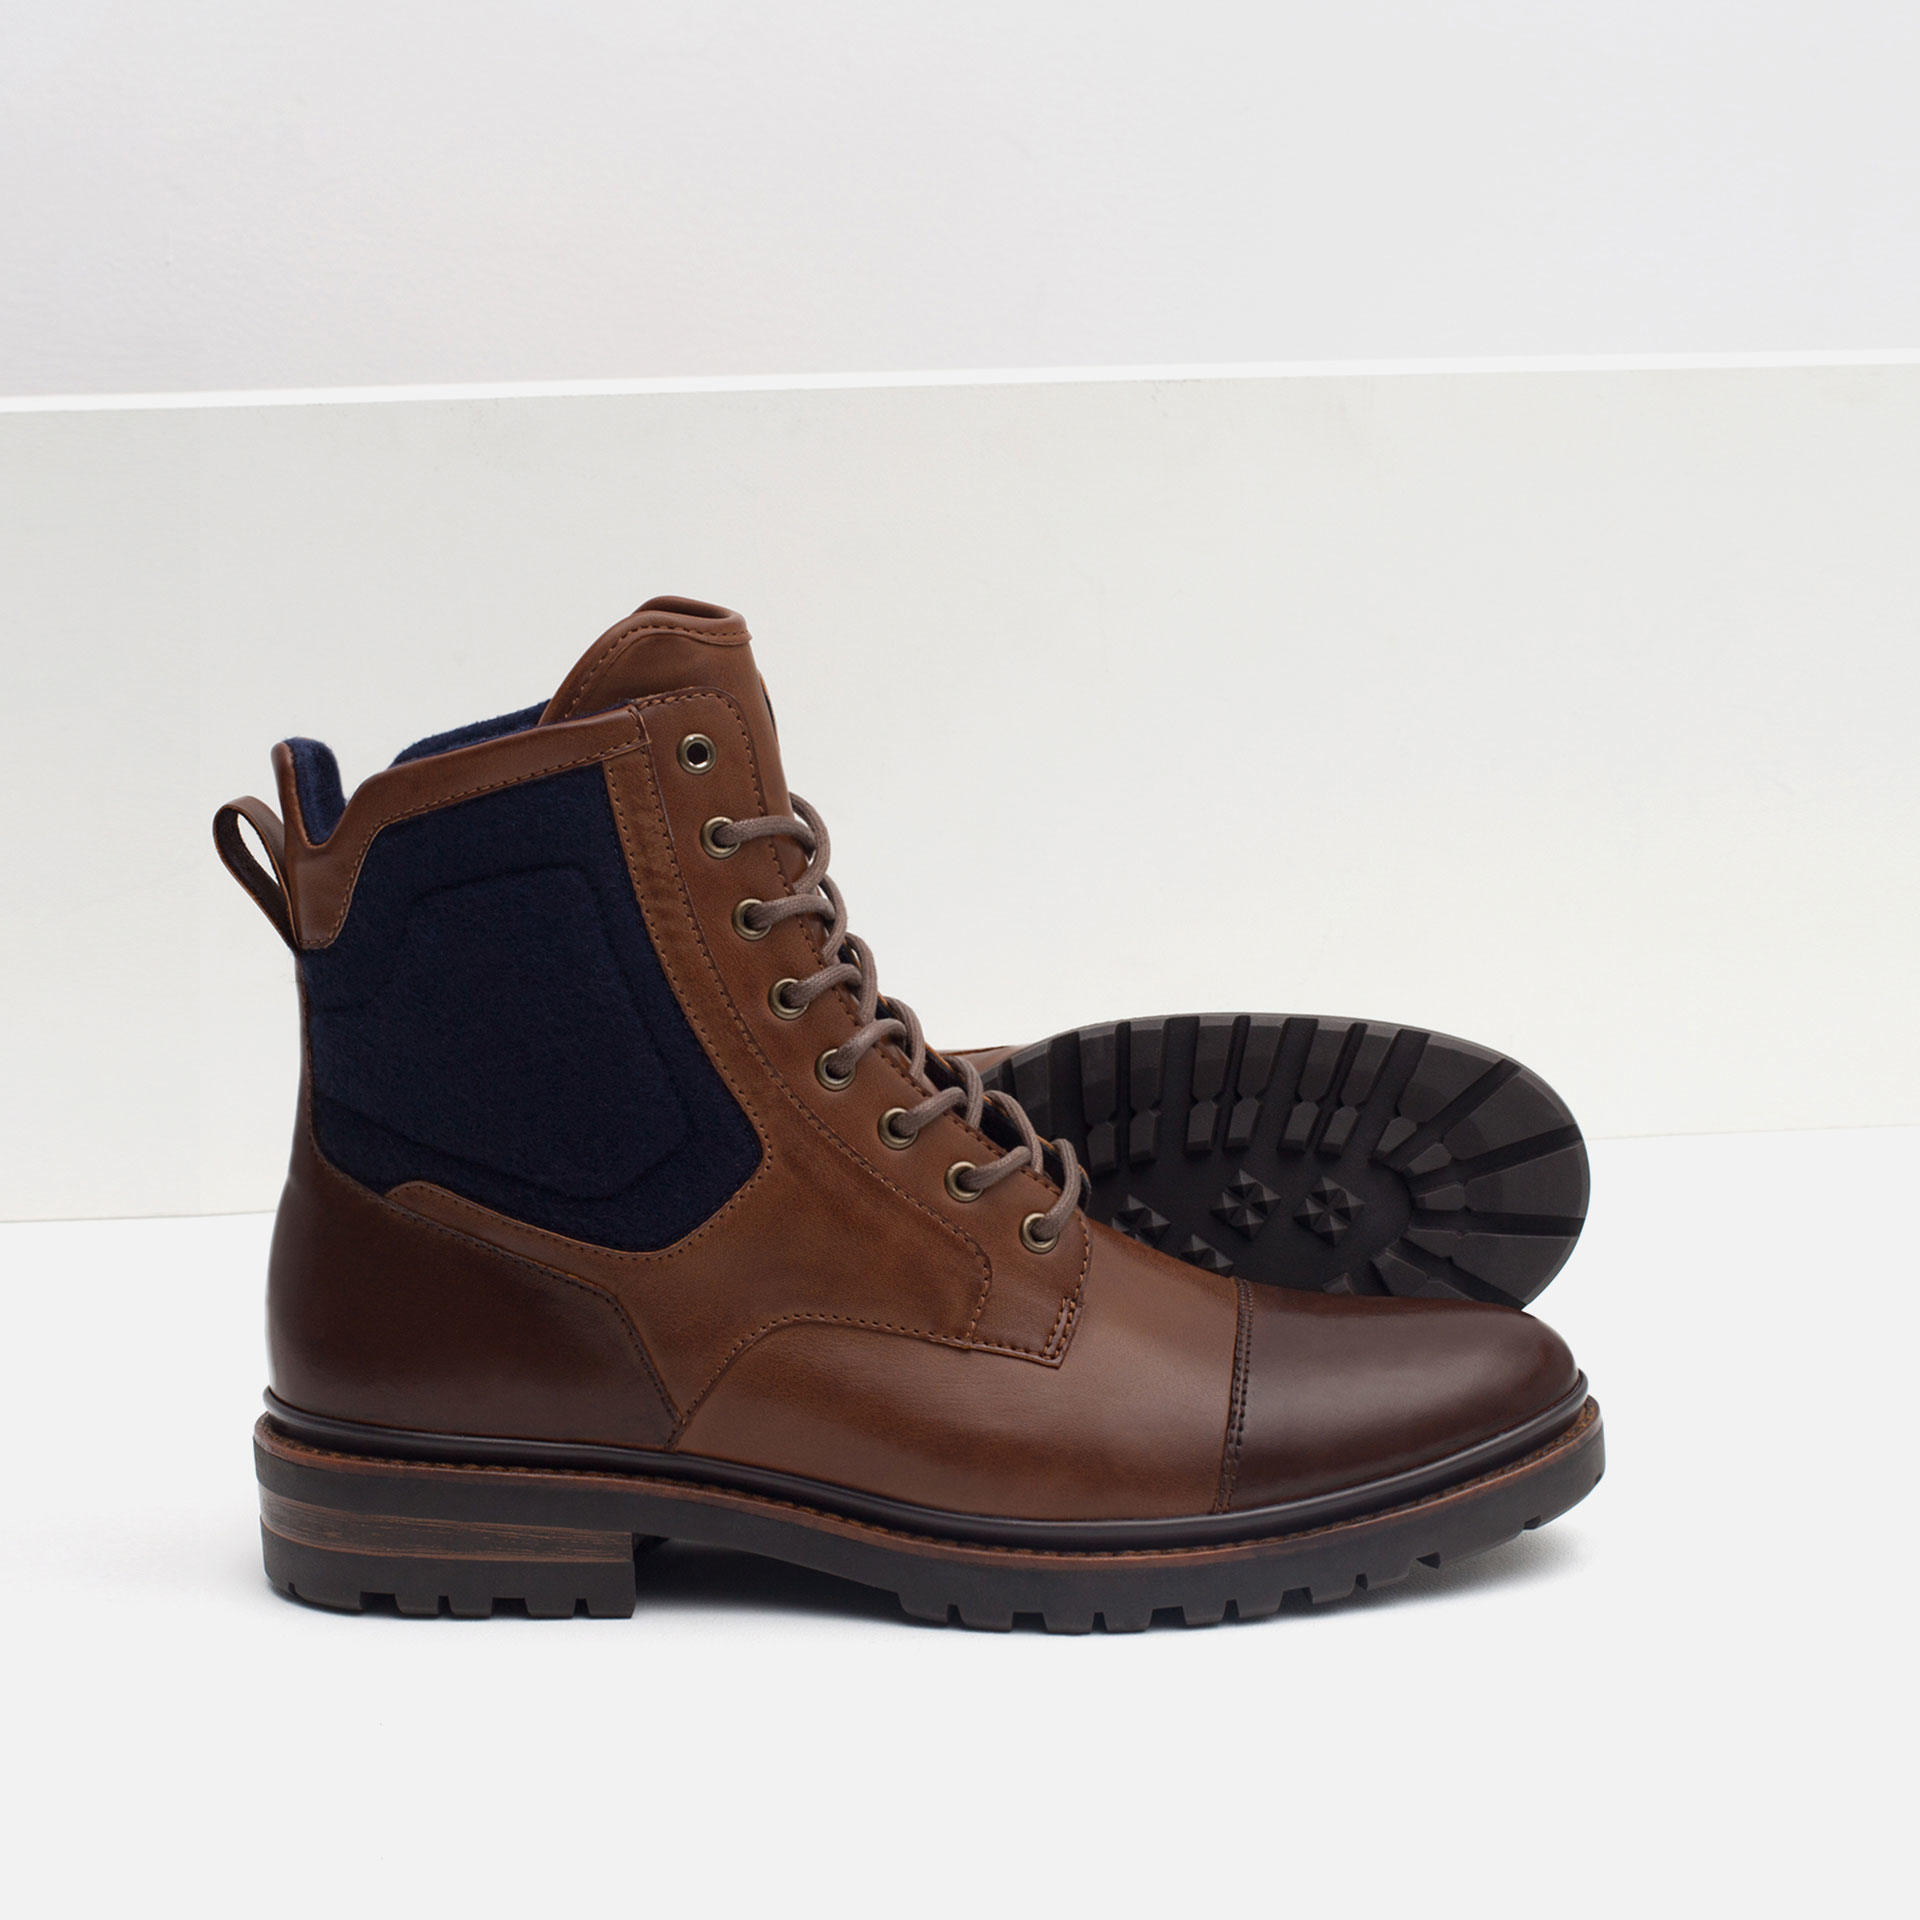 zara combined boots with grip sole combined boots with